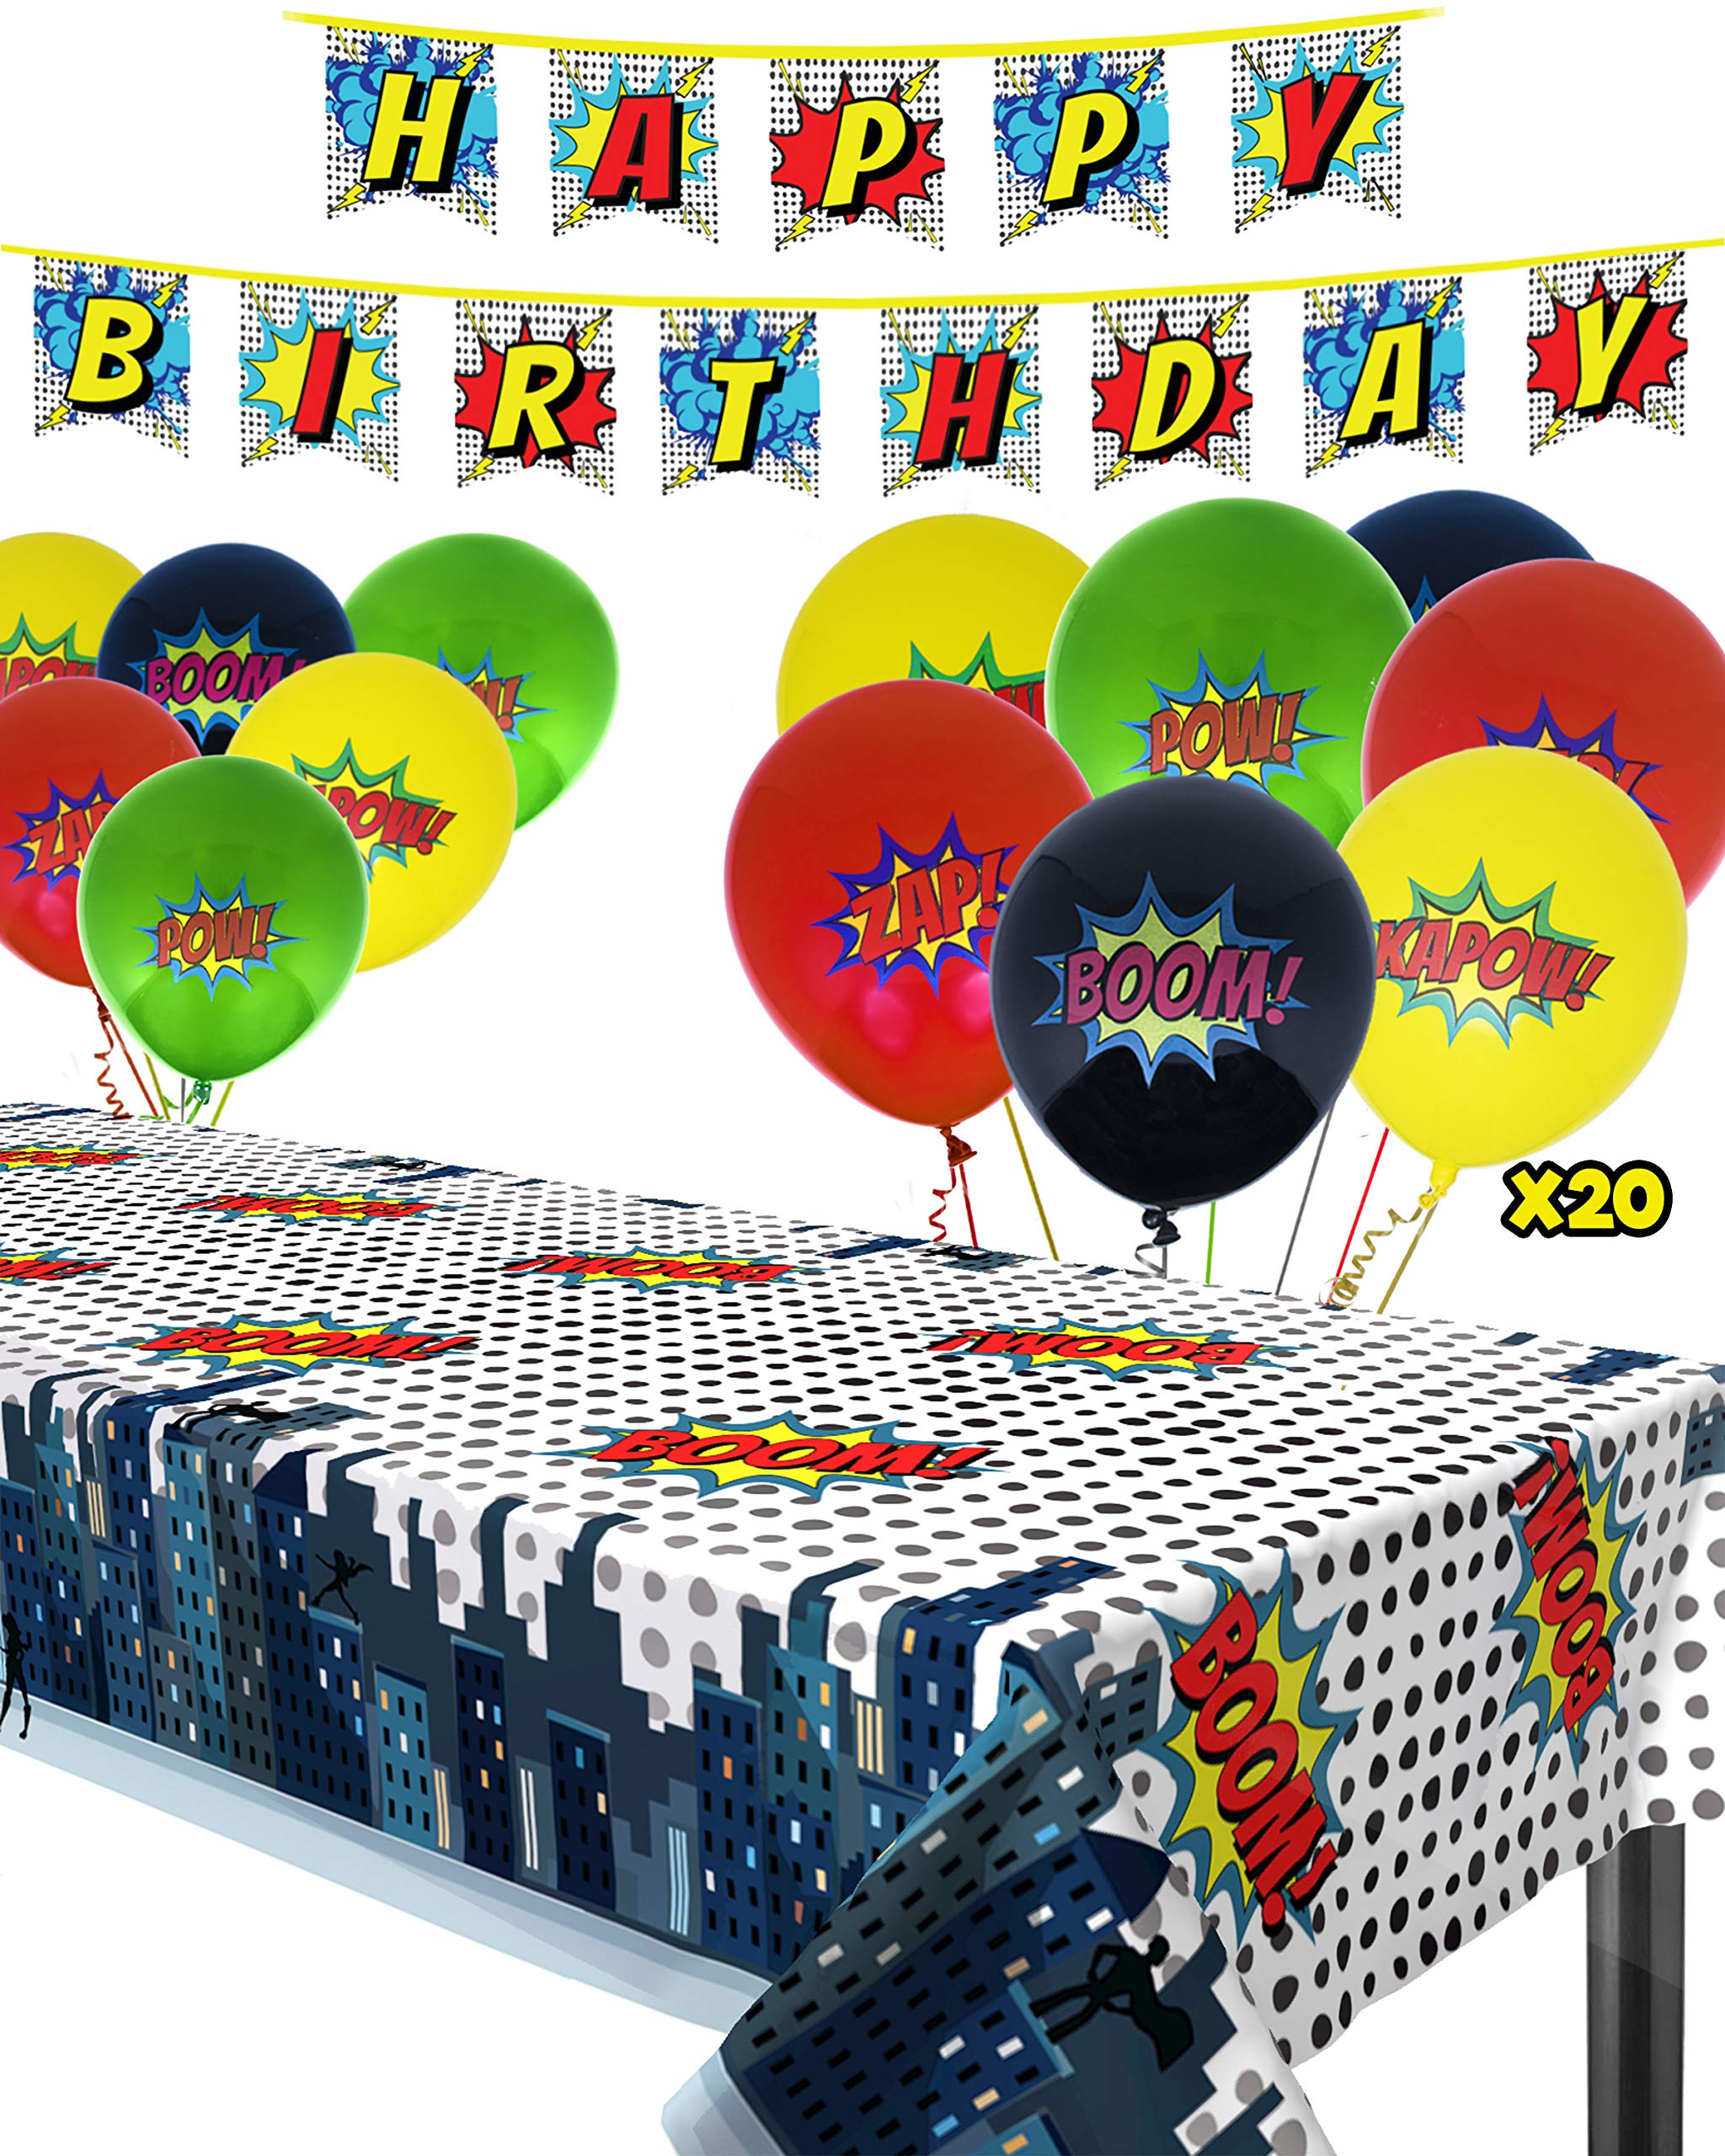 Superhero Party Supplies Kit with Superhero Tablecloth, Superhero Birthday Banner and 20 Superhero Balloons - Complete Superhero Decorations Kit by The Memory Building Company